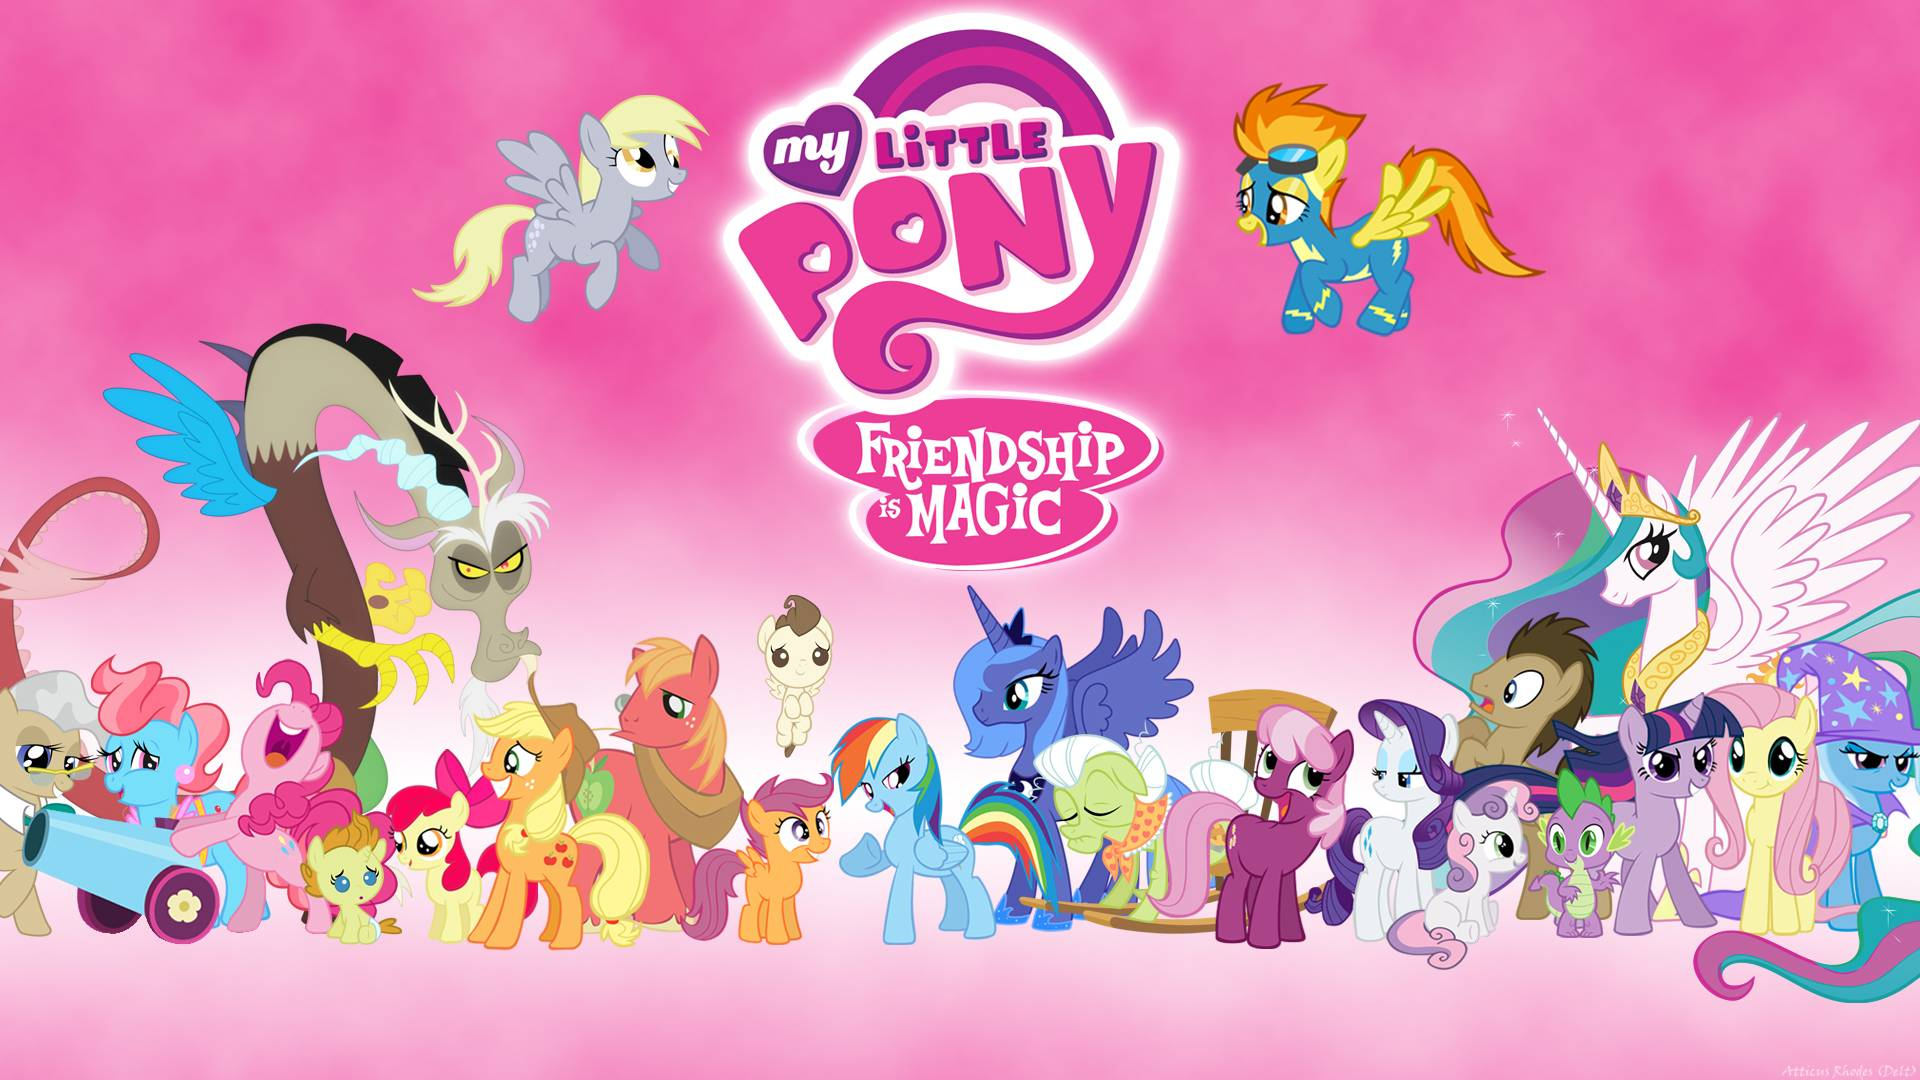 My Little Pony Frienship Is Magic Images